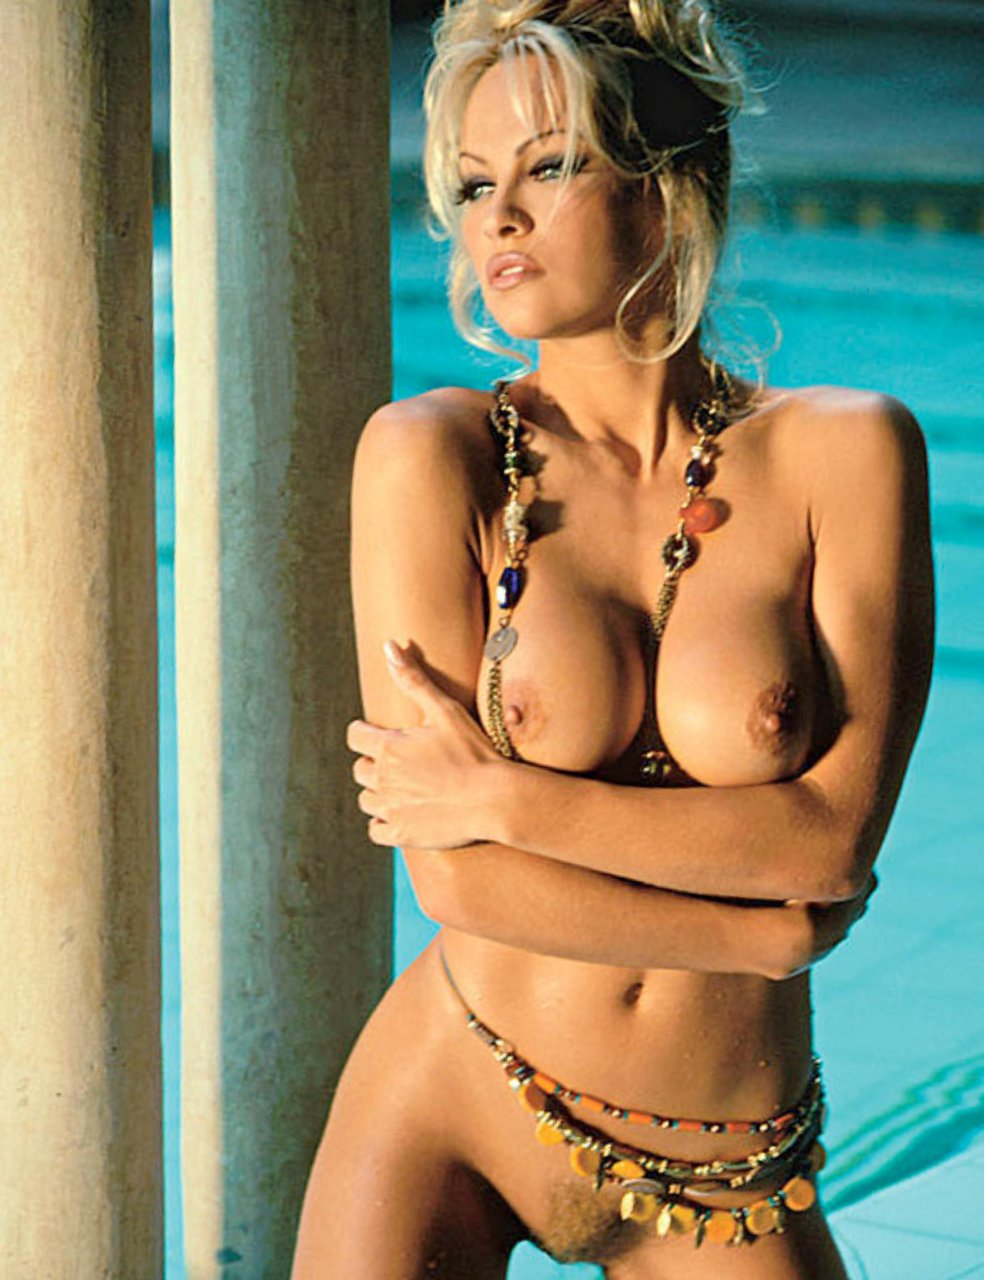 pam anderson in the nude